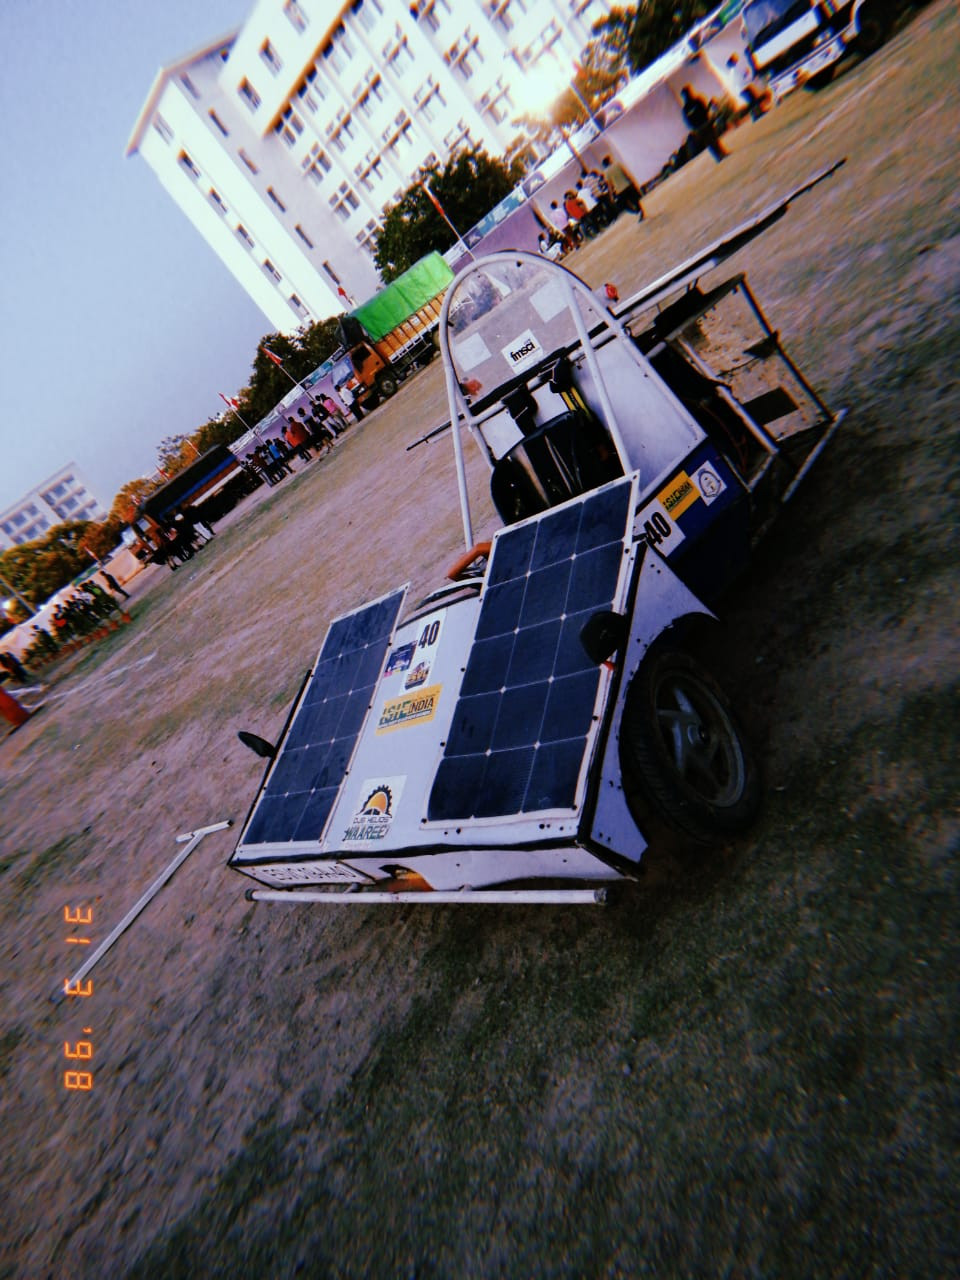 DJS Helios, Solar Electric Vehicle, Student team from Mumbai